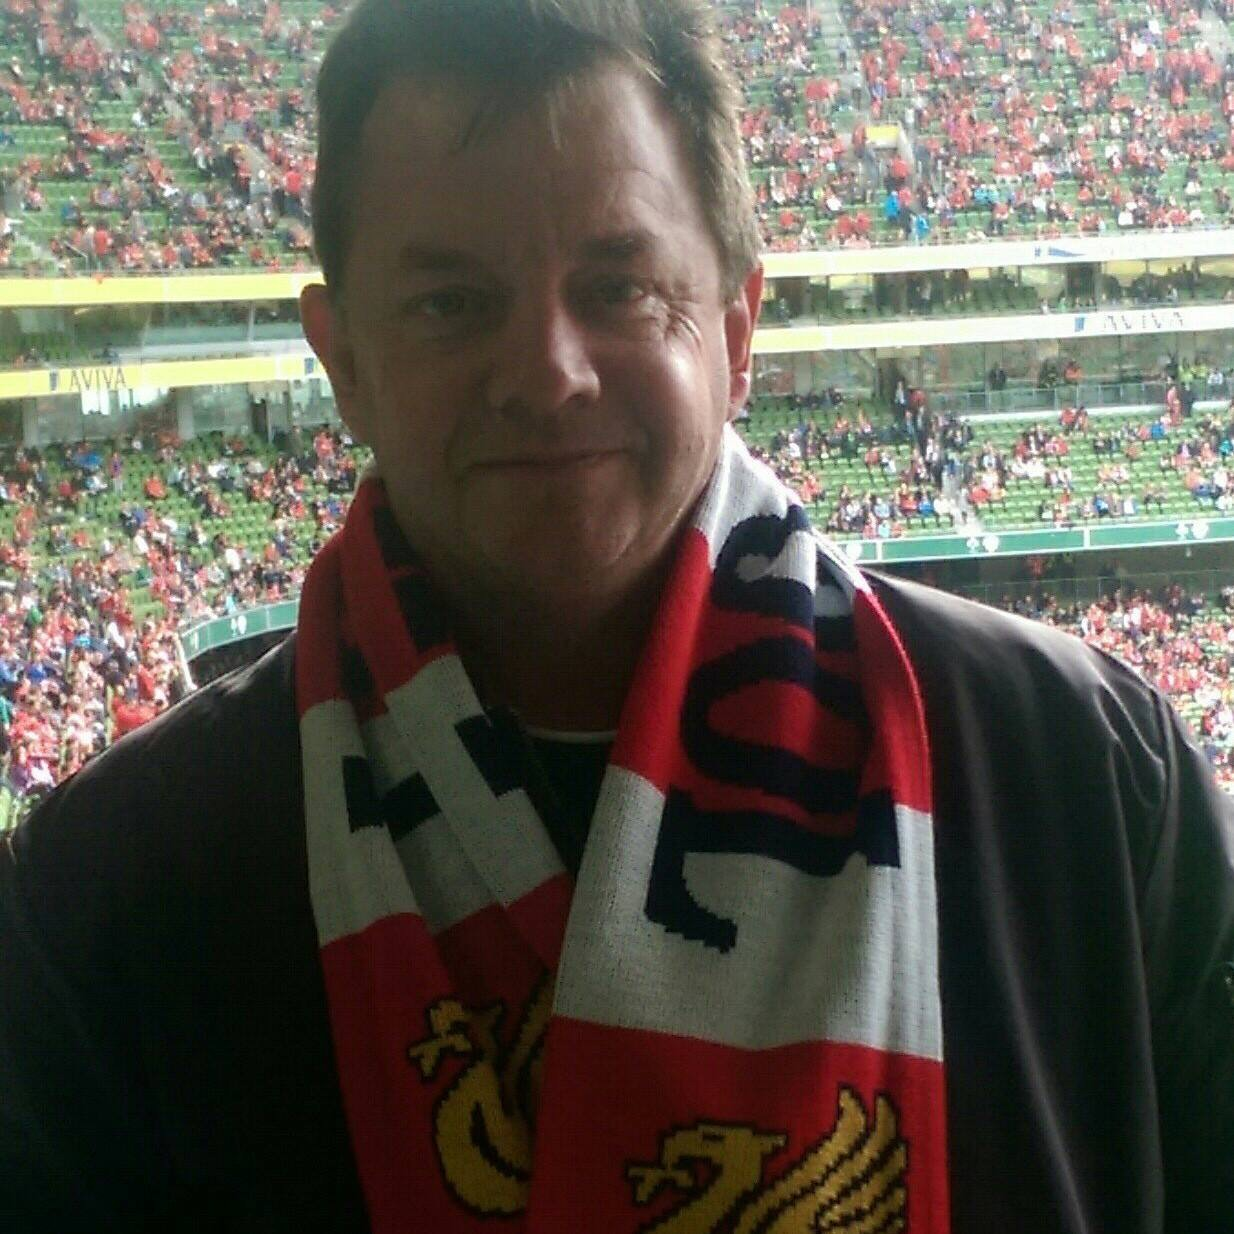 The Kop … through the eyes of a South African (GB)